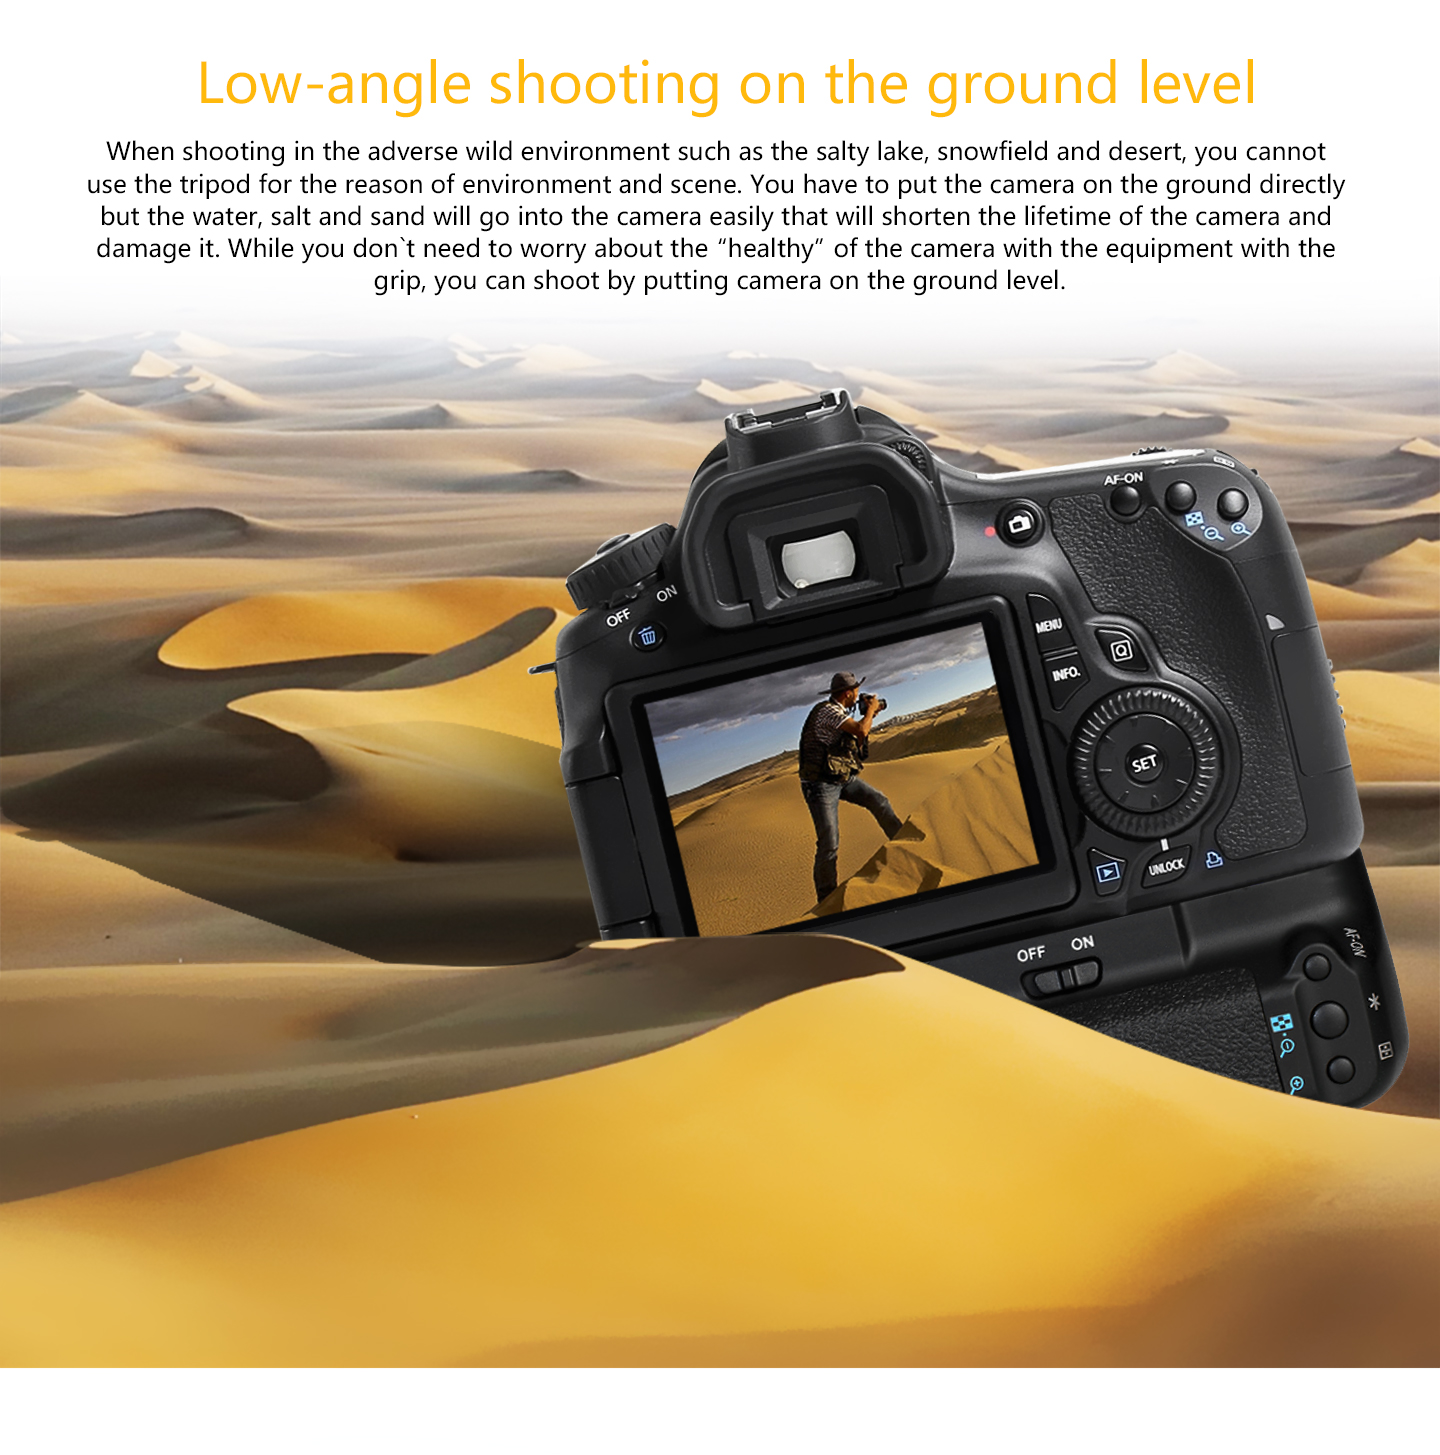 Low-angle shooting on the ground level